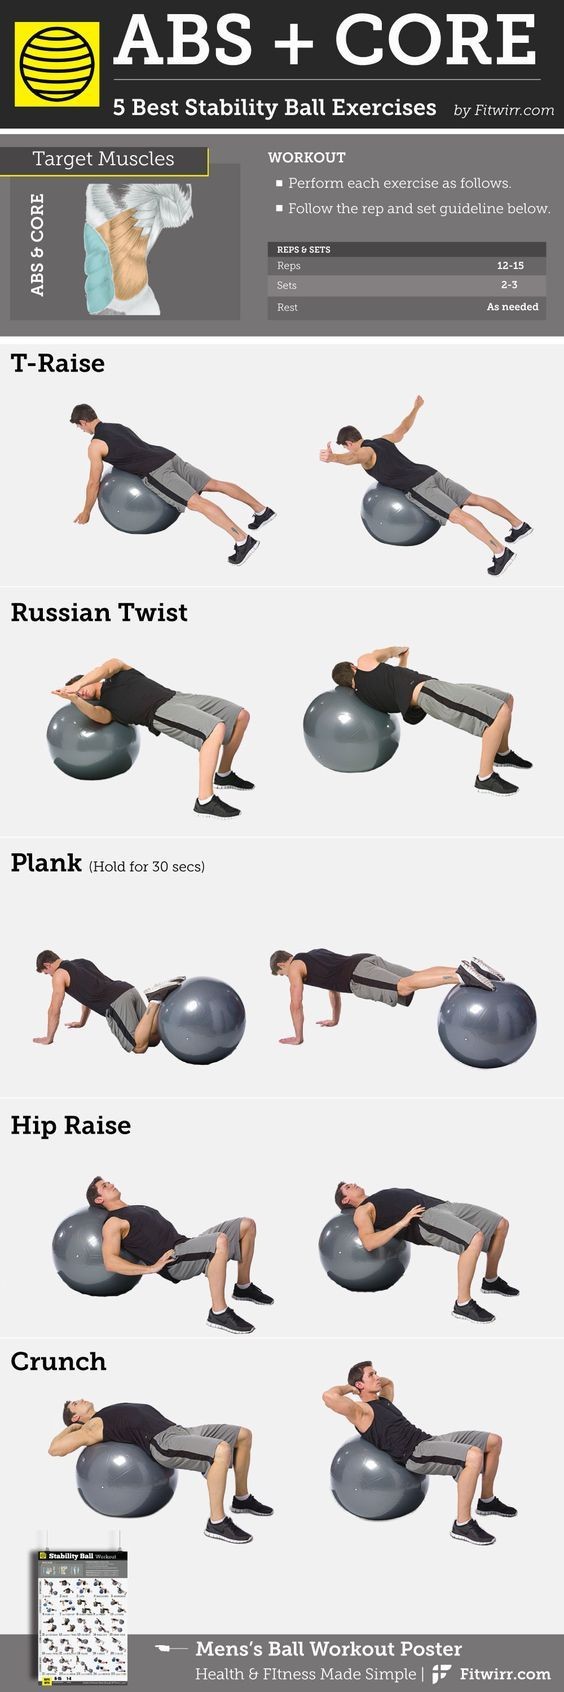 Souvent 5 Best Abs and Core Exercises With a Stability Ball for Men  VA45